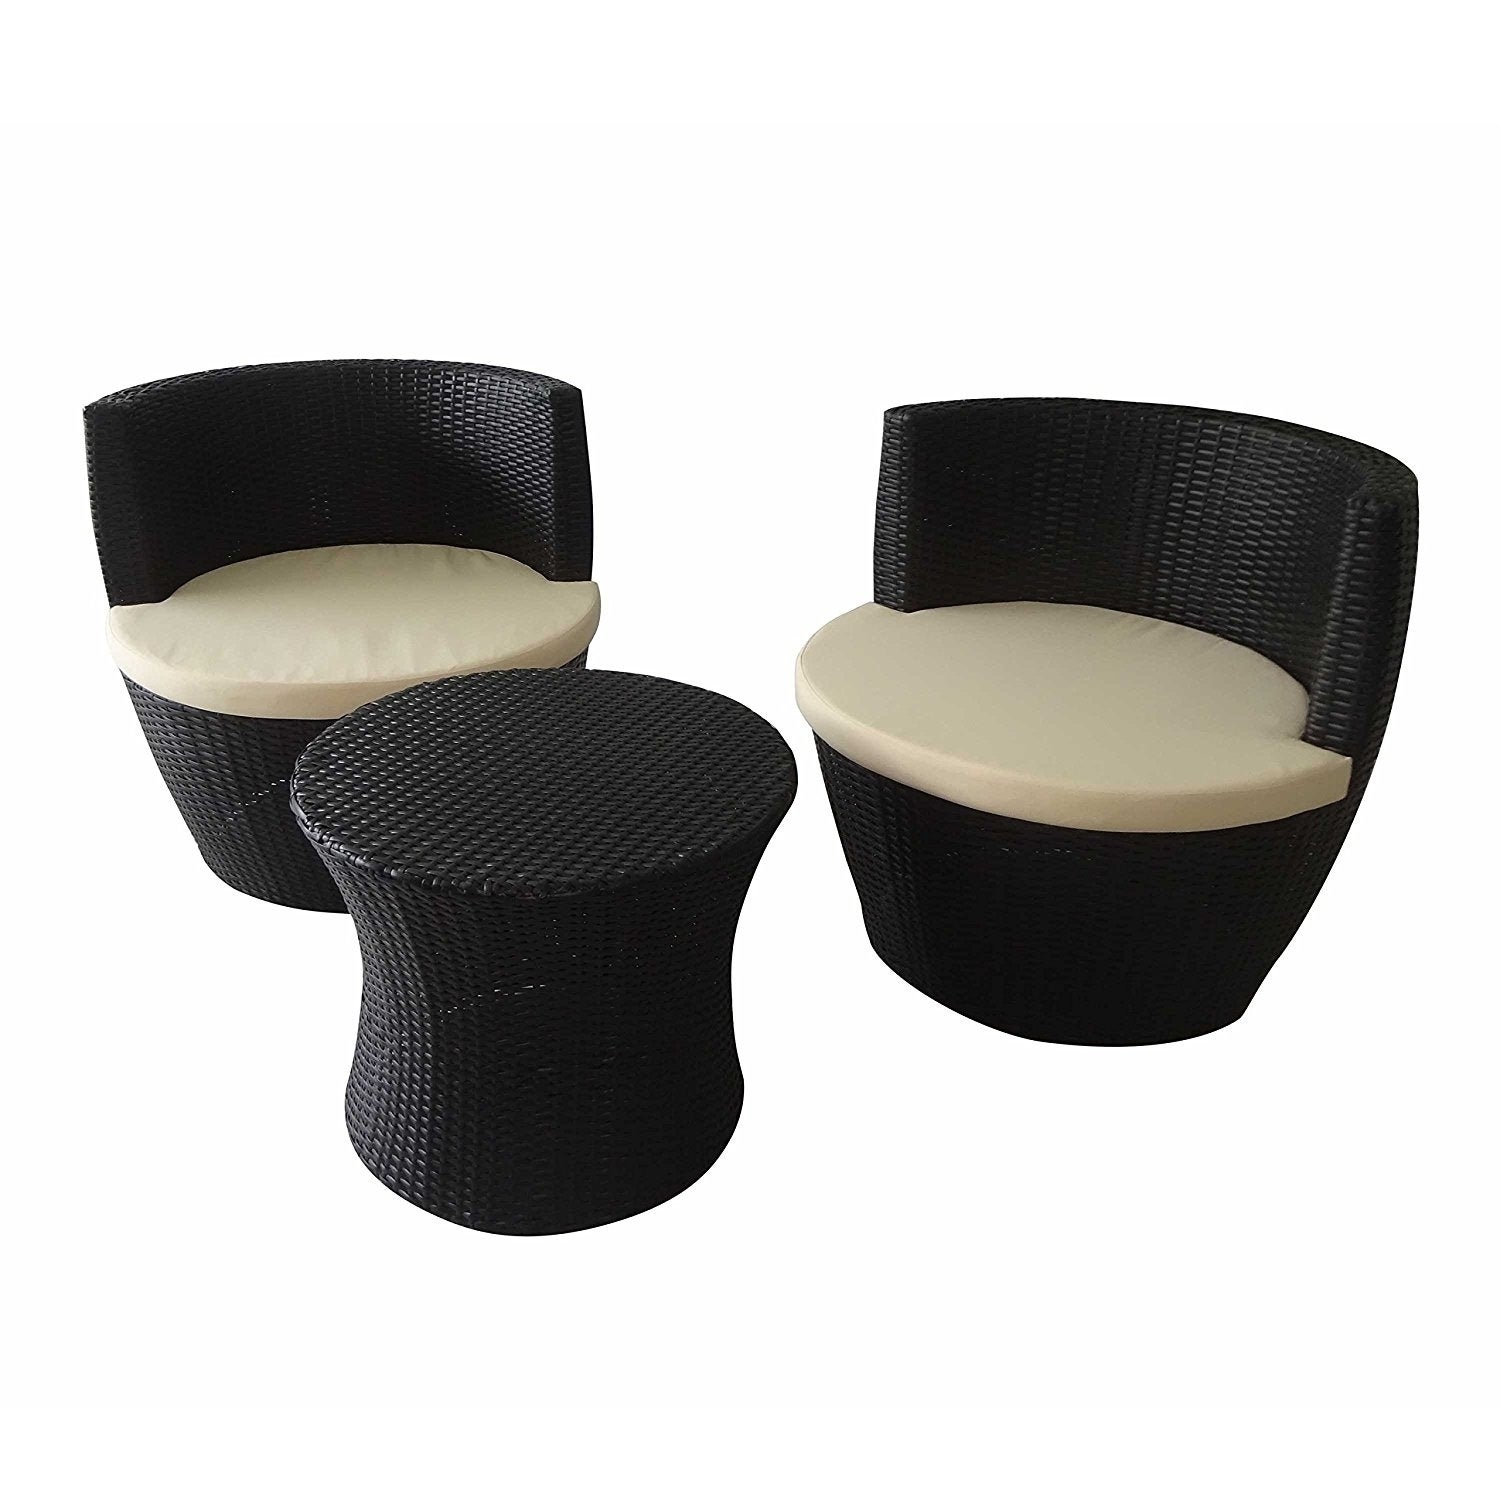 Aleko Indoor Outdoor 3 Piece Rattan Furniture Set with Cu...